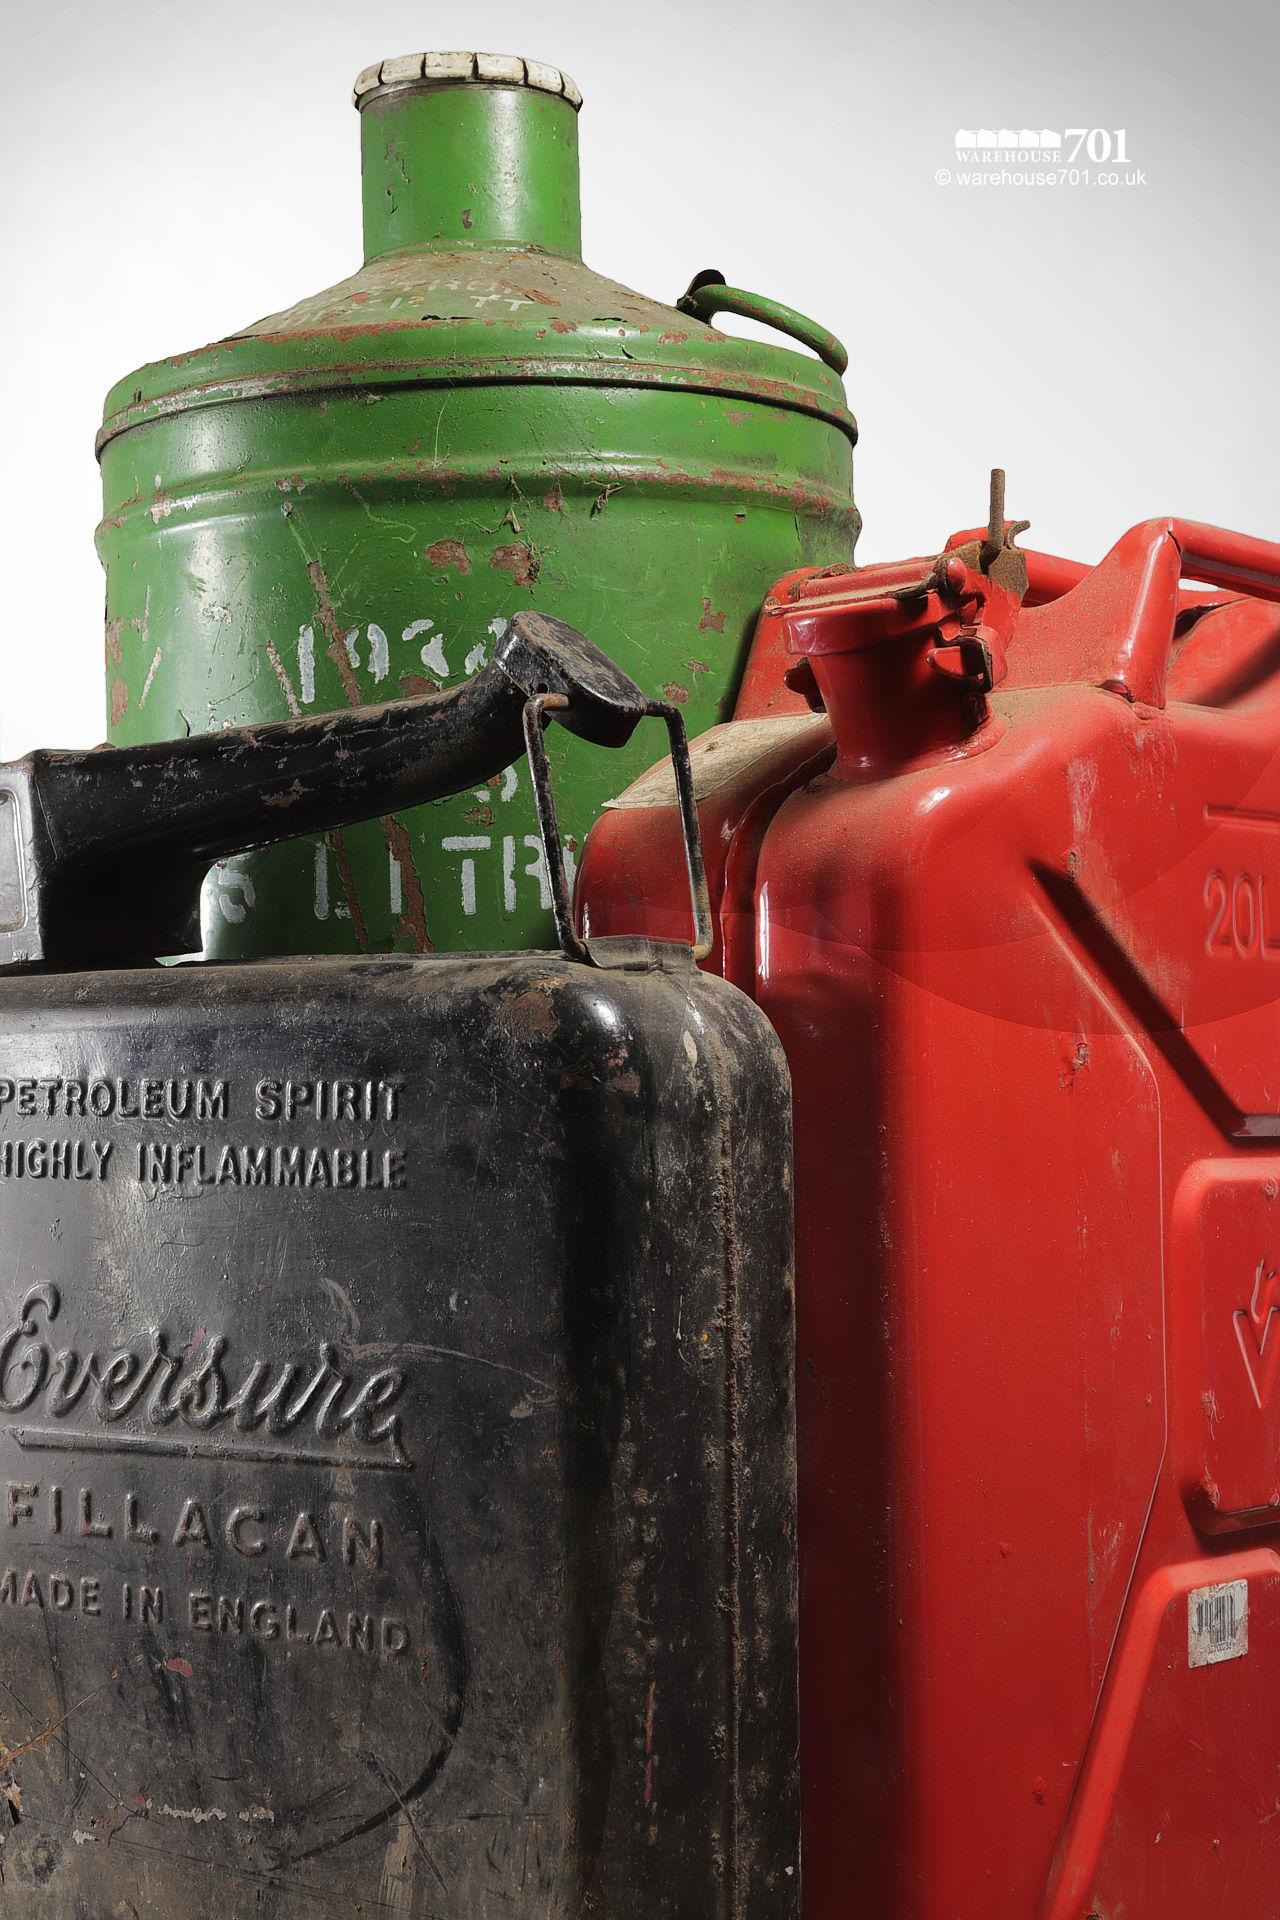 Assorted Salvaged Jerry Cans and Fuel and Oil Cans